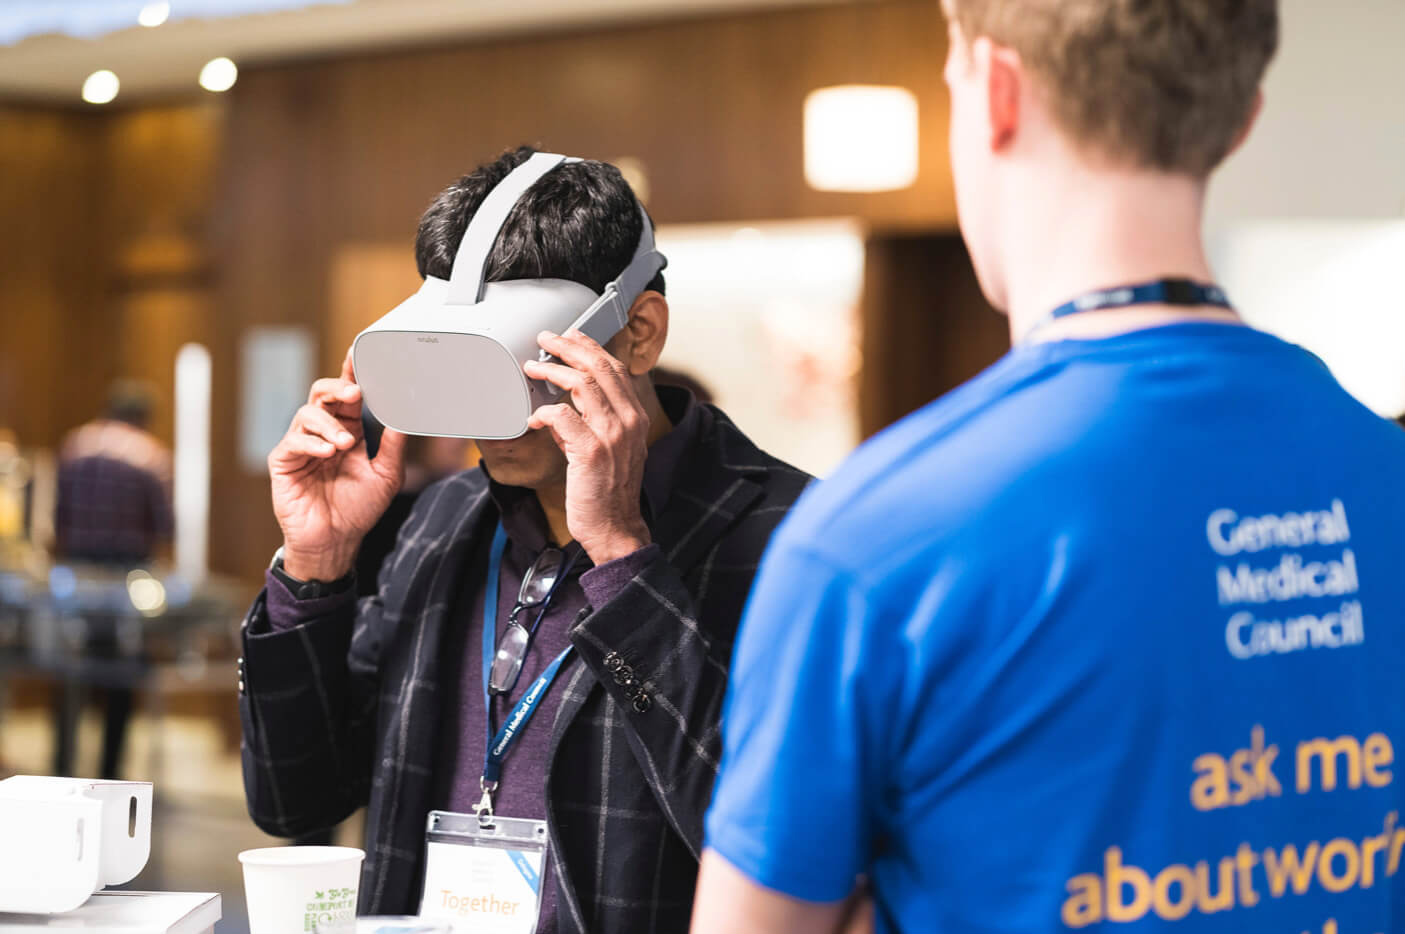 VR at conference